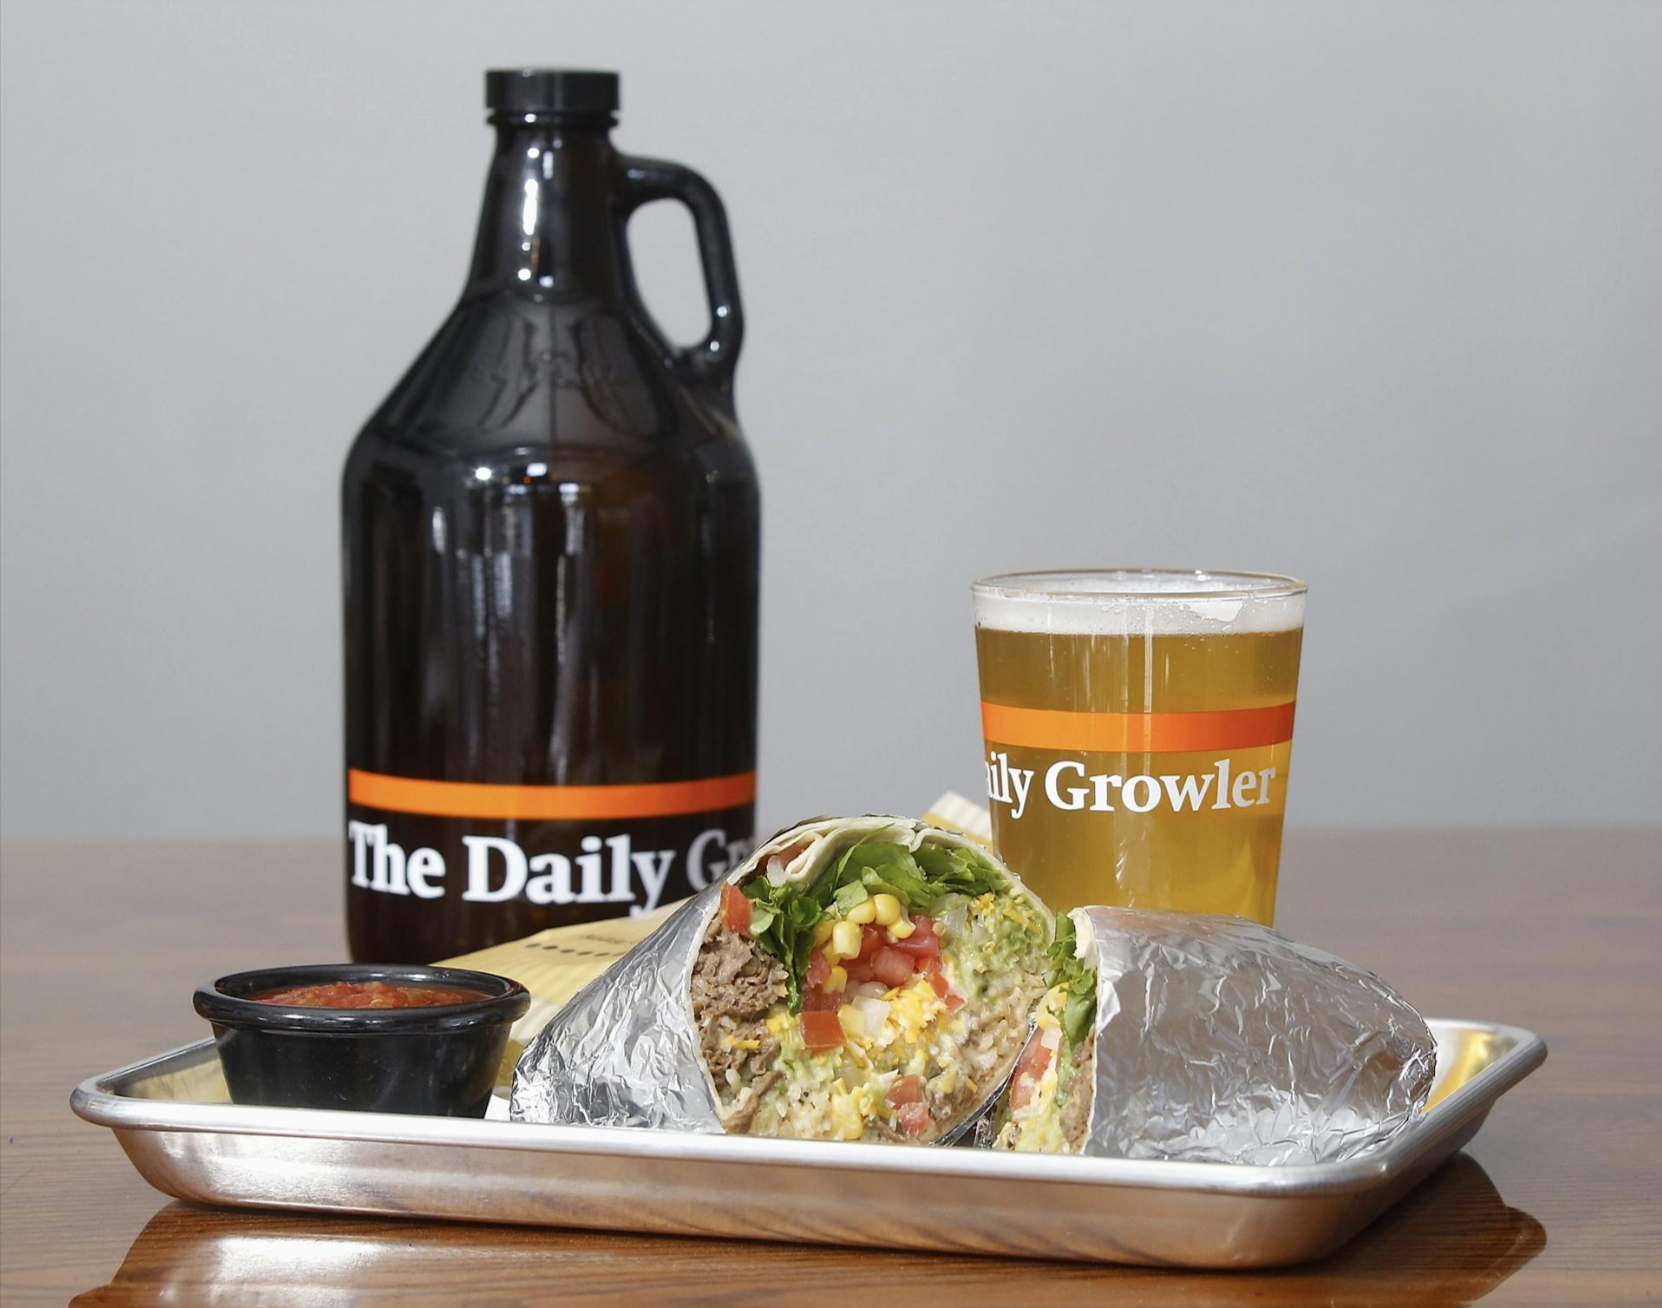 beer & wrap from the Daily Growler